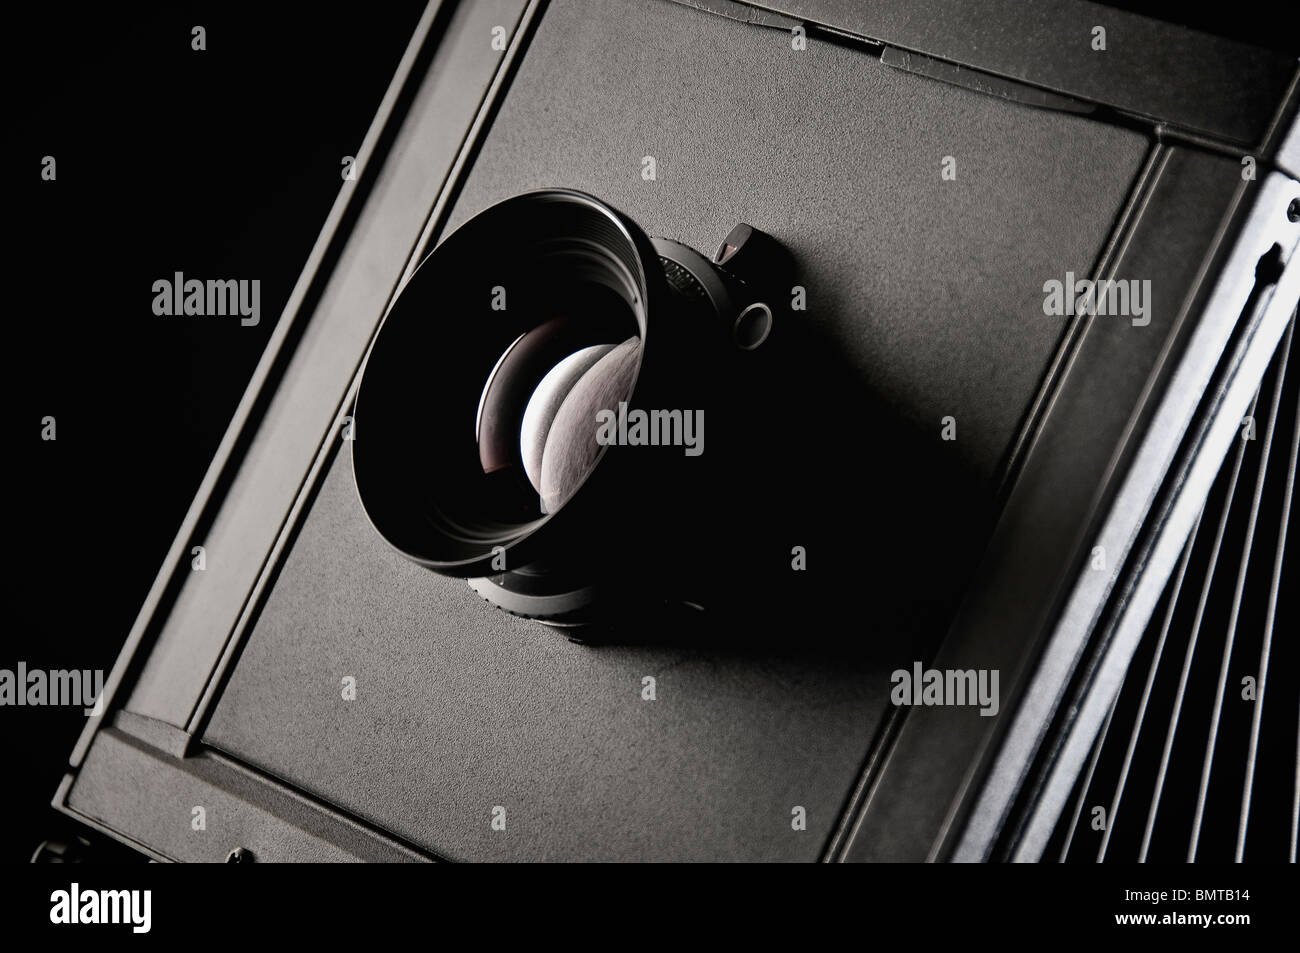 Large format camera photo. - Stock Image